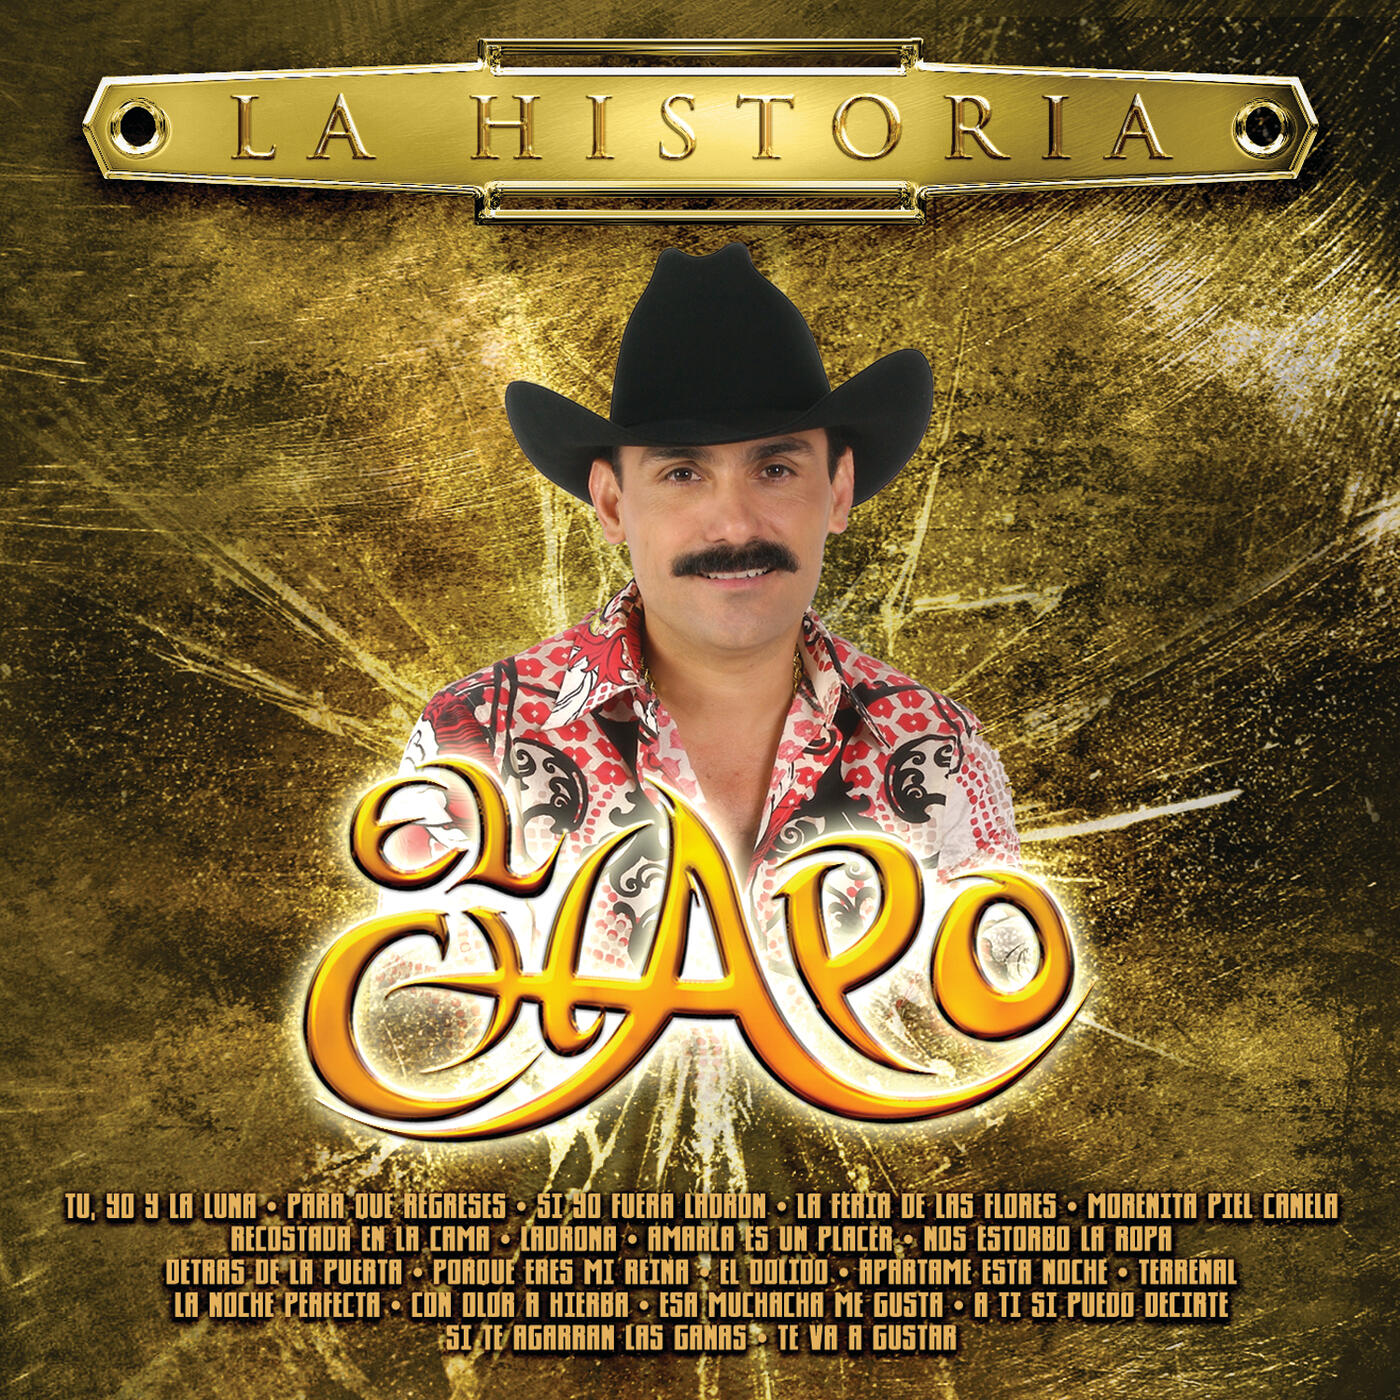 el chapo radio  listen to free music  u0026 get the latest info